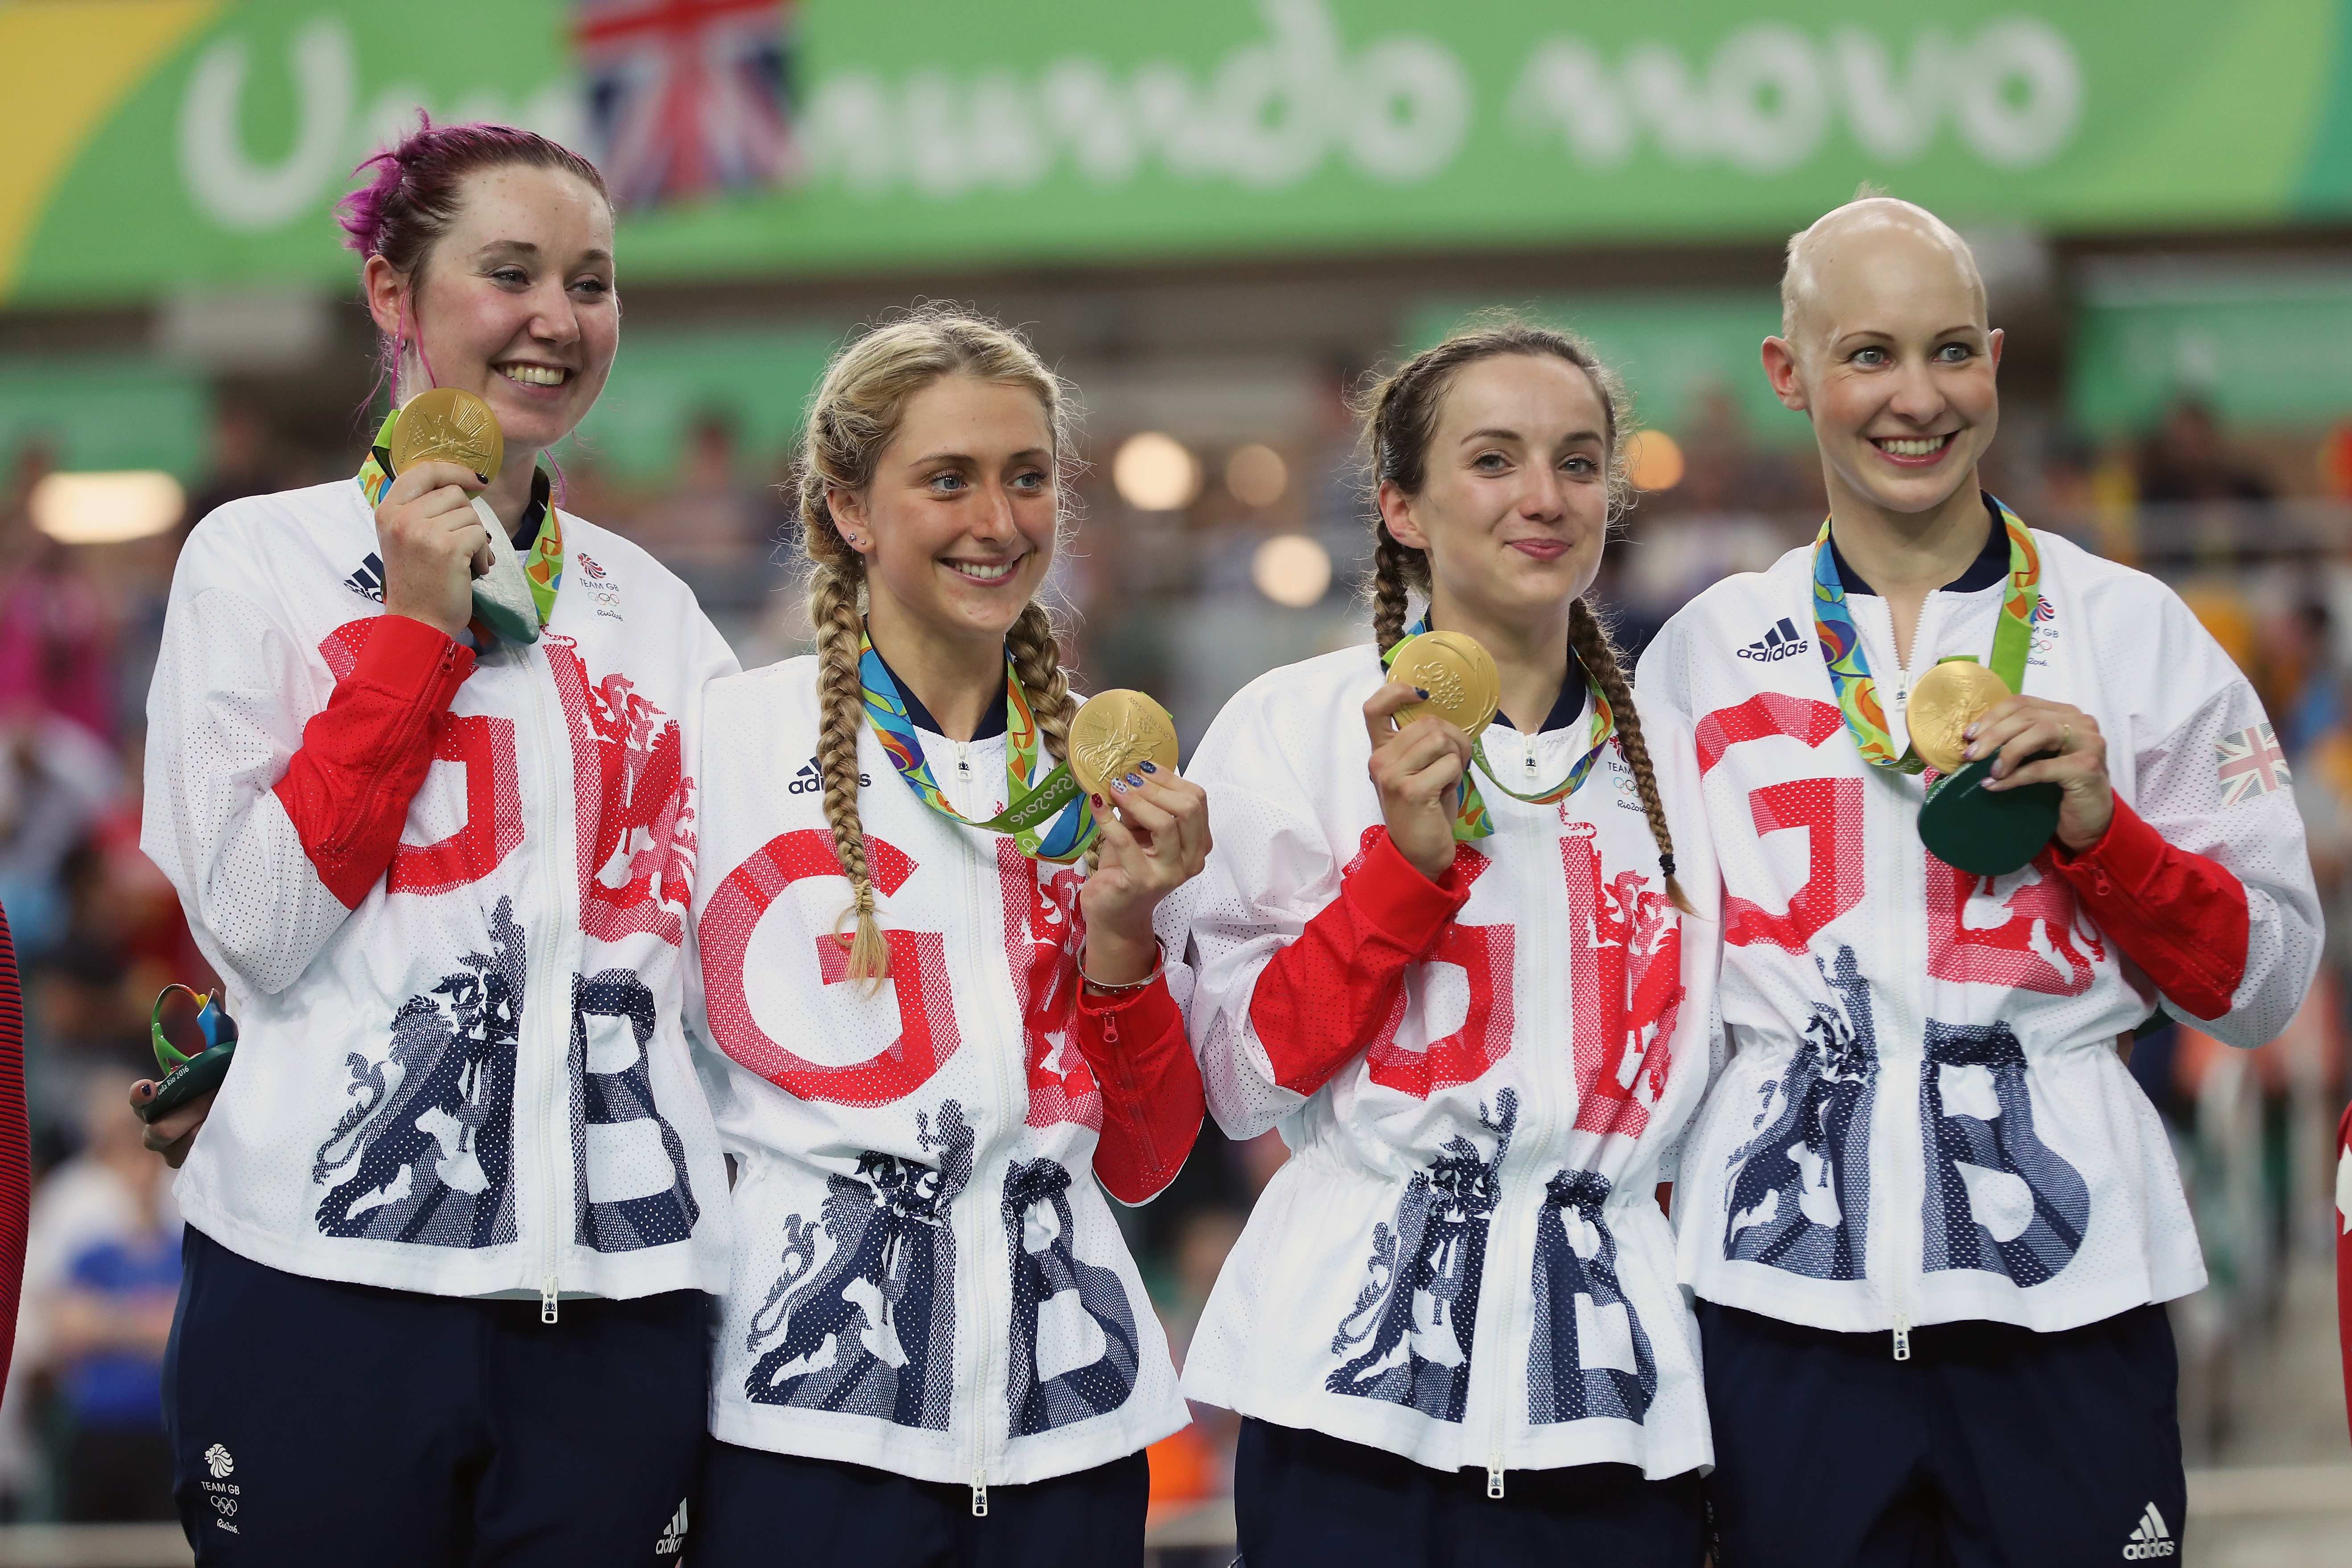 Gold Medalists Laura Trott Joanna Row Shand Katie Archibald And Elinor Barker Petersen Getty Images